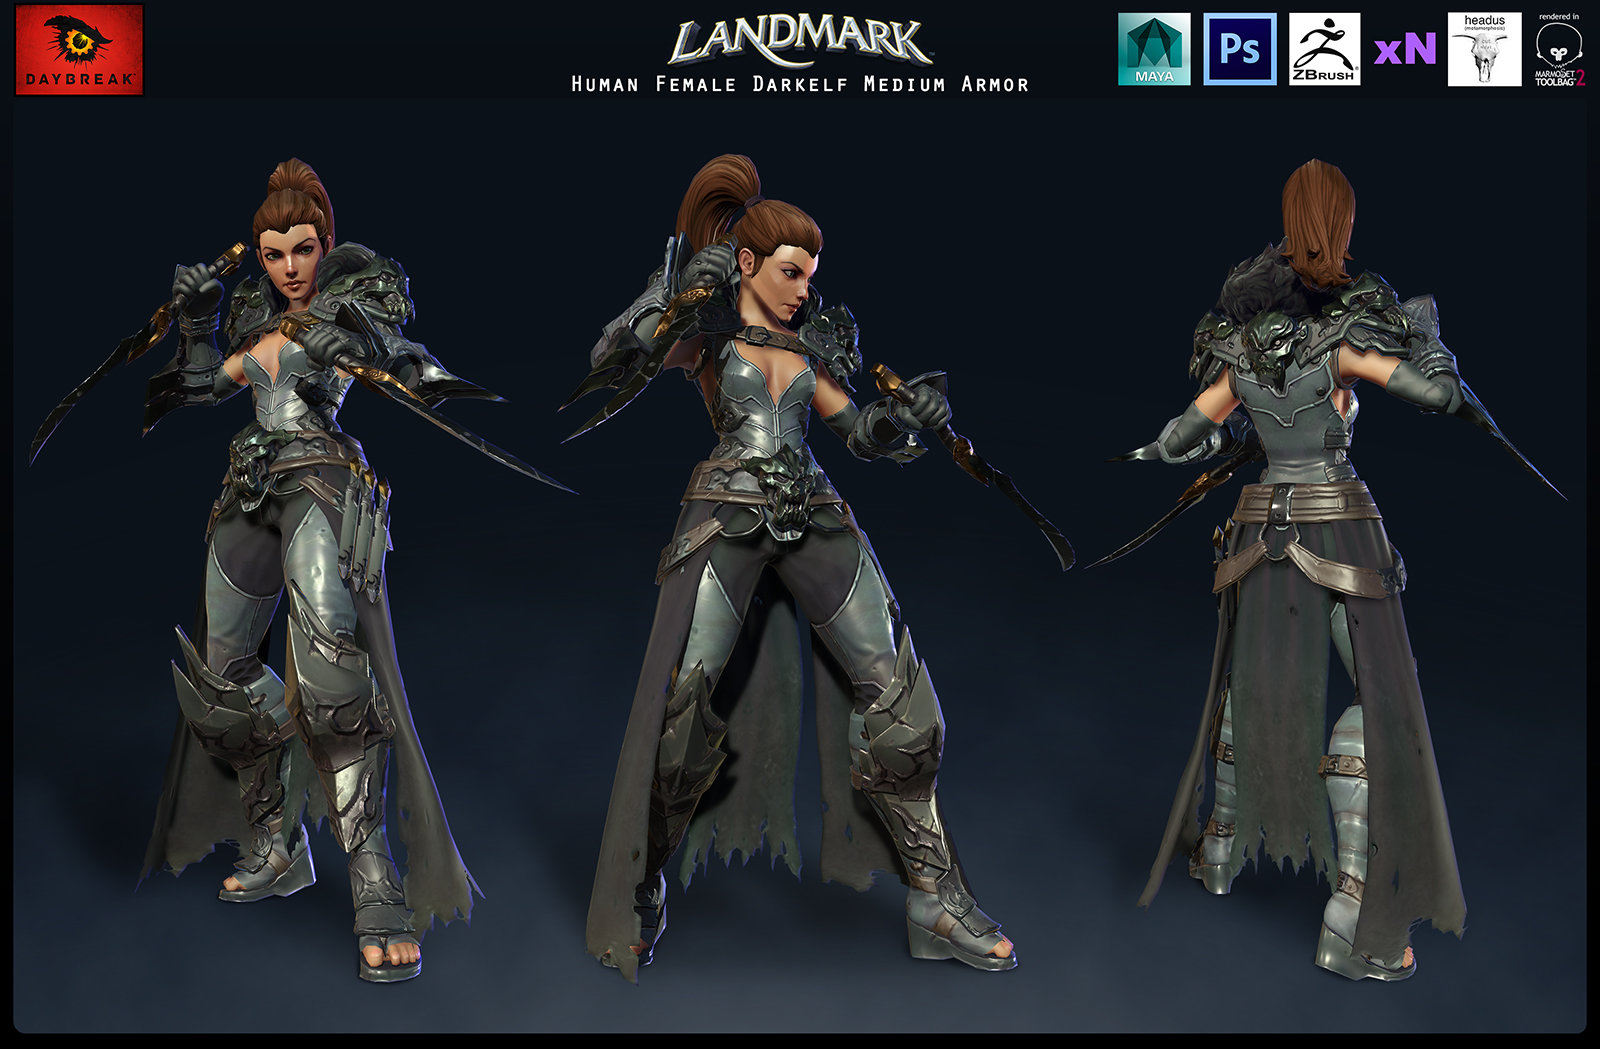 Human Female Darkelf Medium Armor